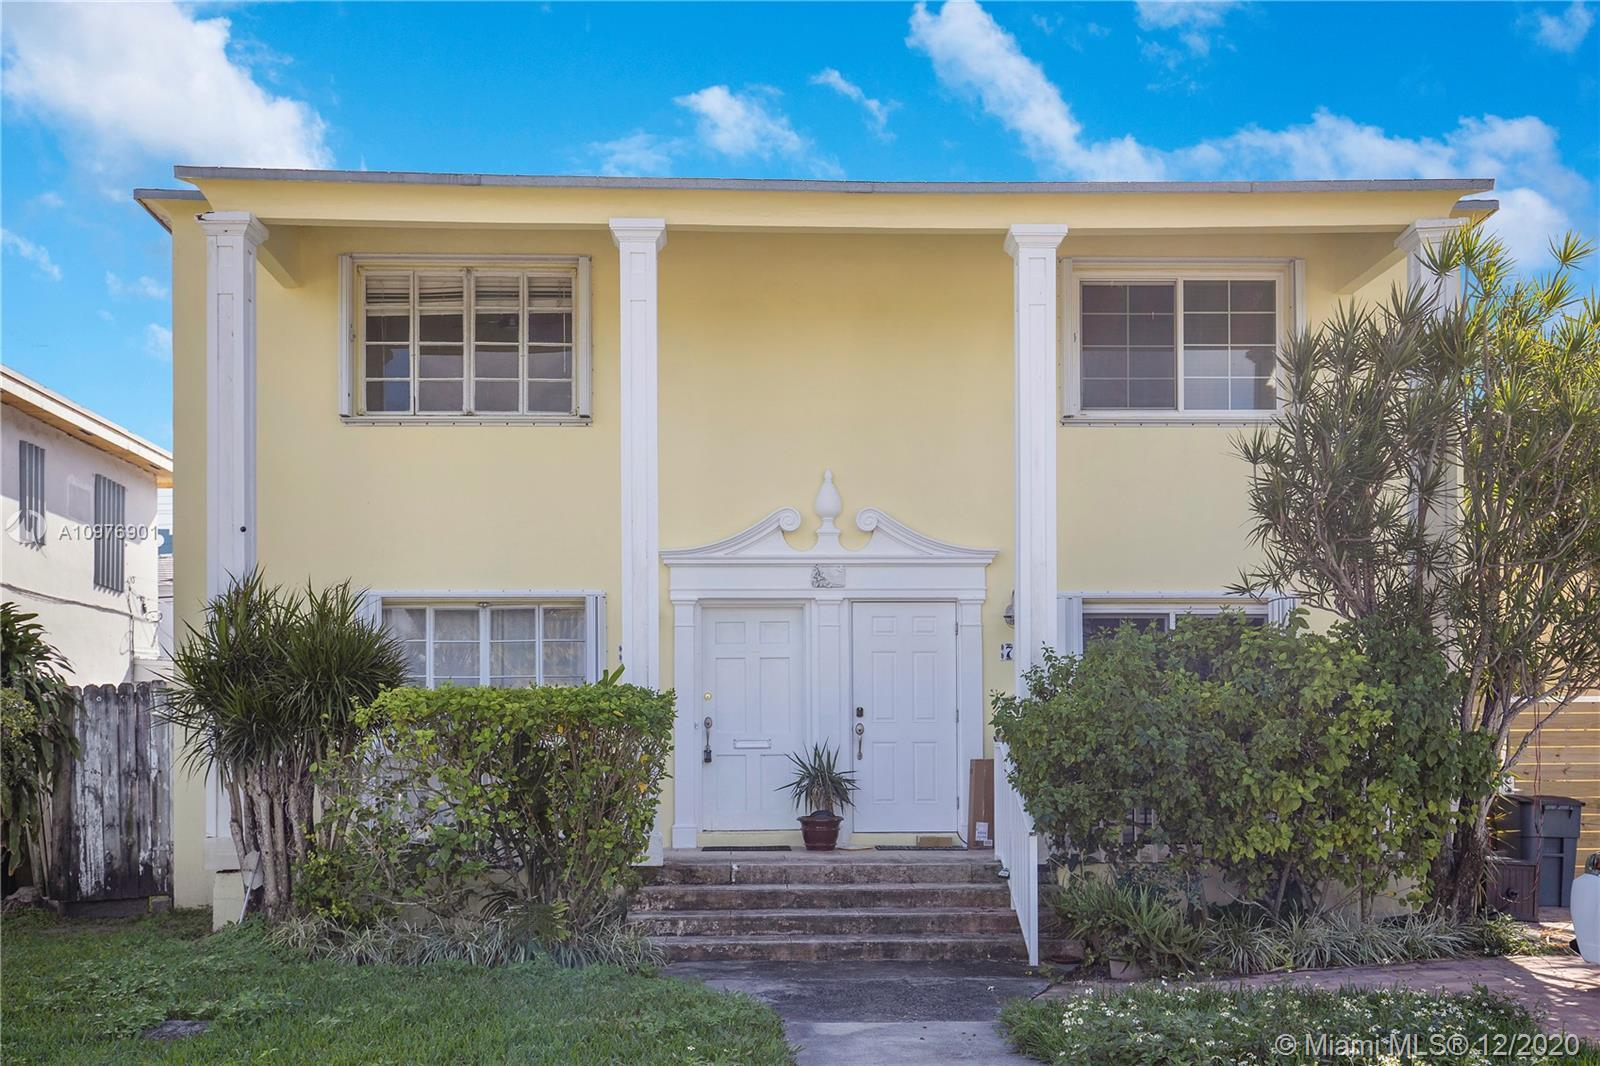 Make this home yours. Home has lots of potential and private patio. Blocks from the beach and centra